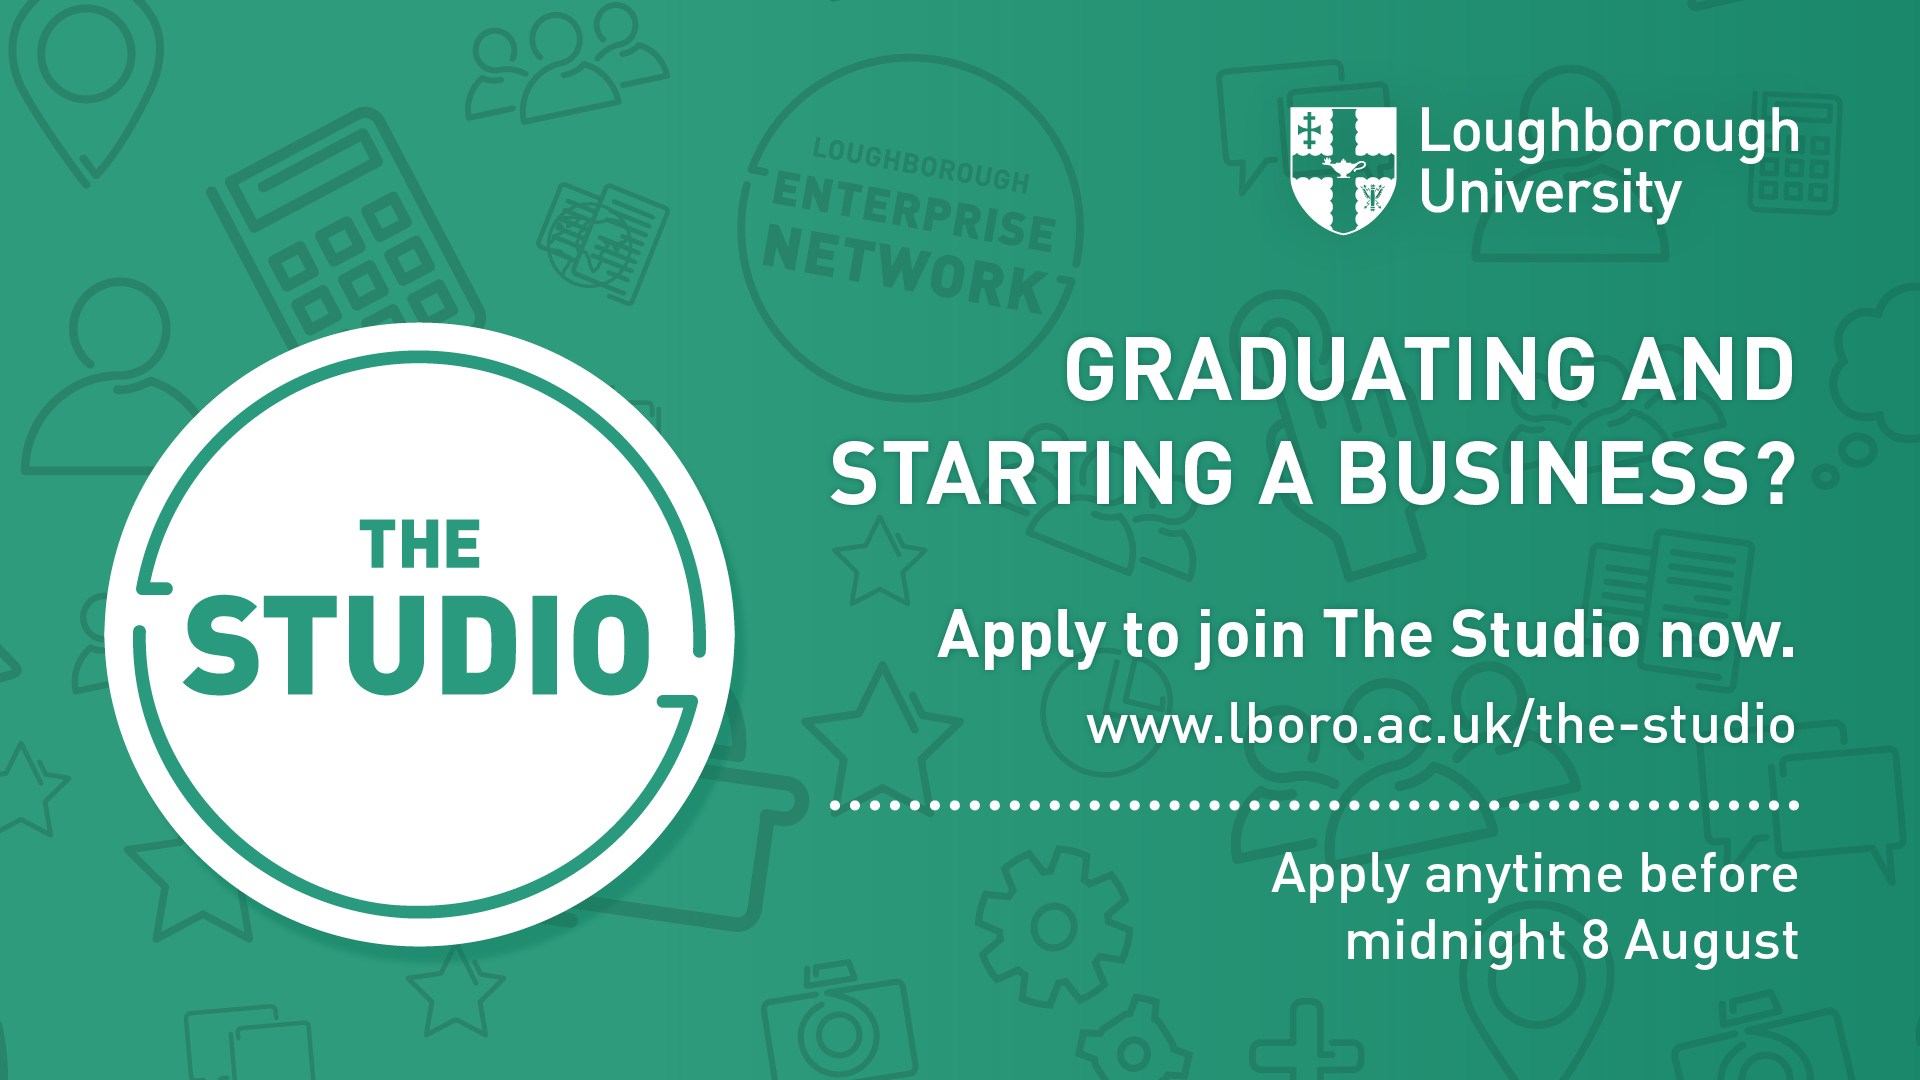 Launch your business with The Studio